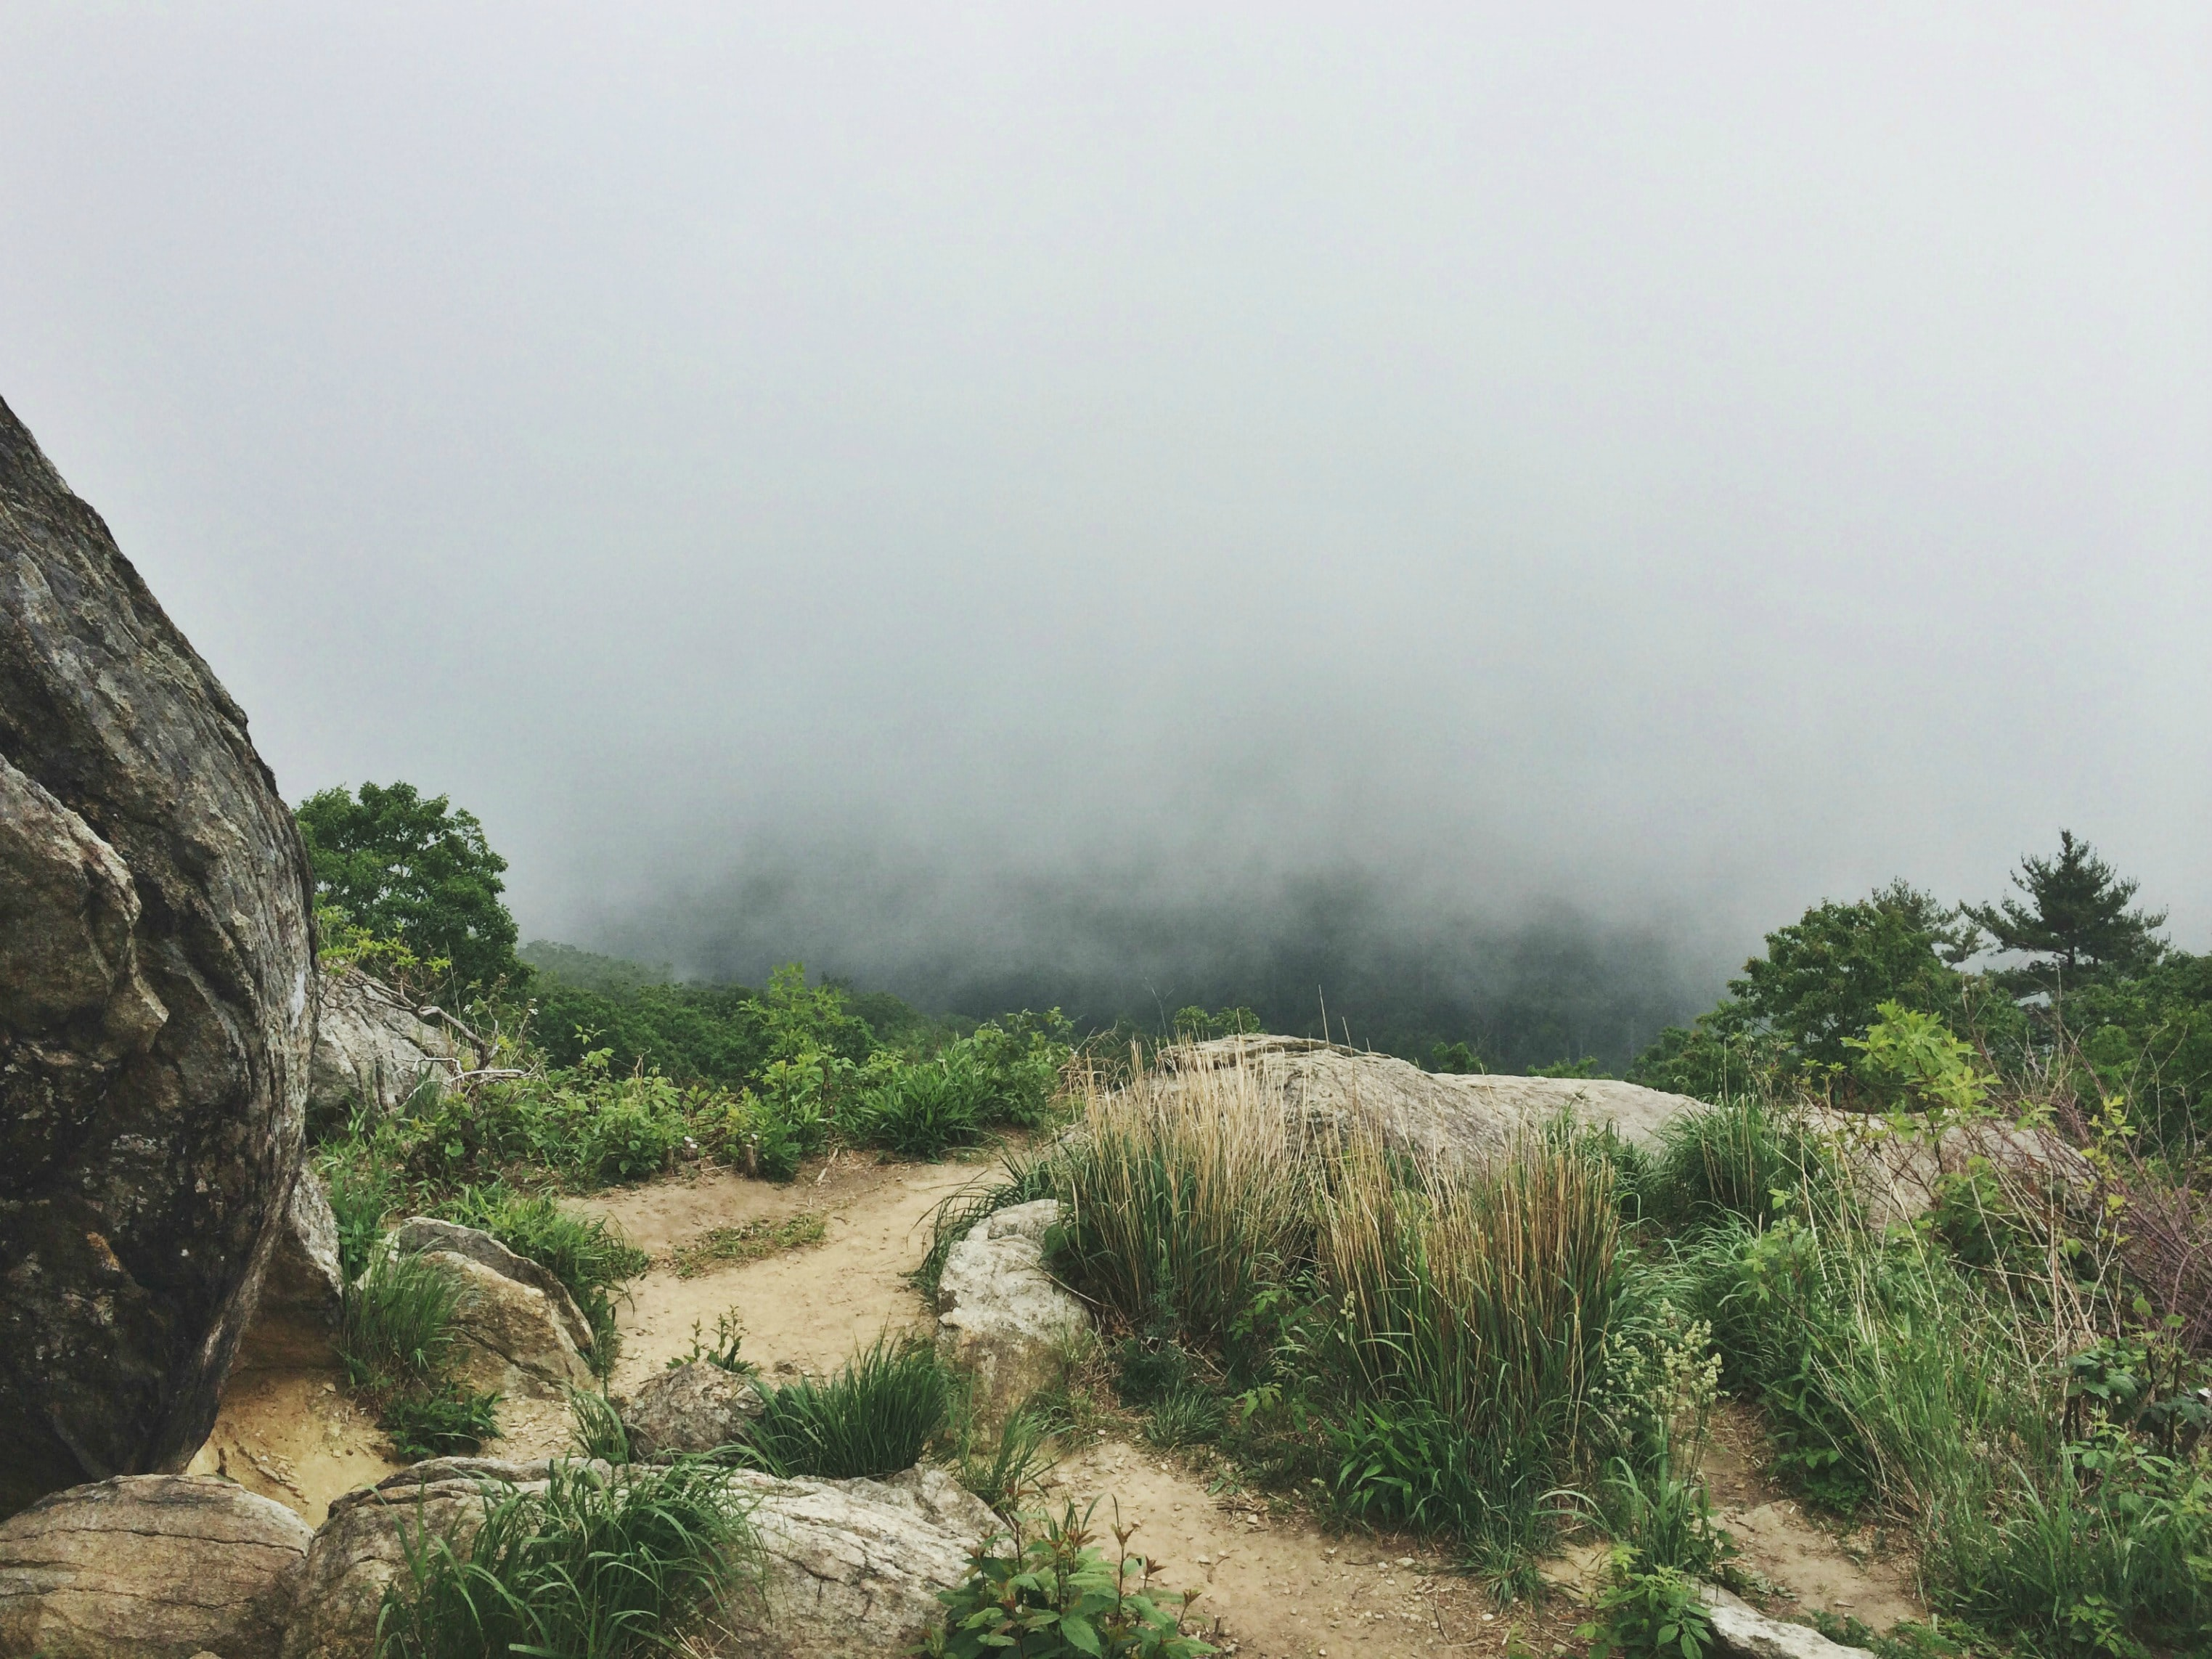 A grassy ledge overlooking a mist-shrouded chasm